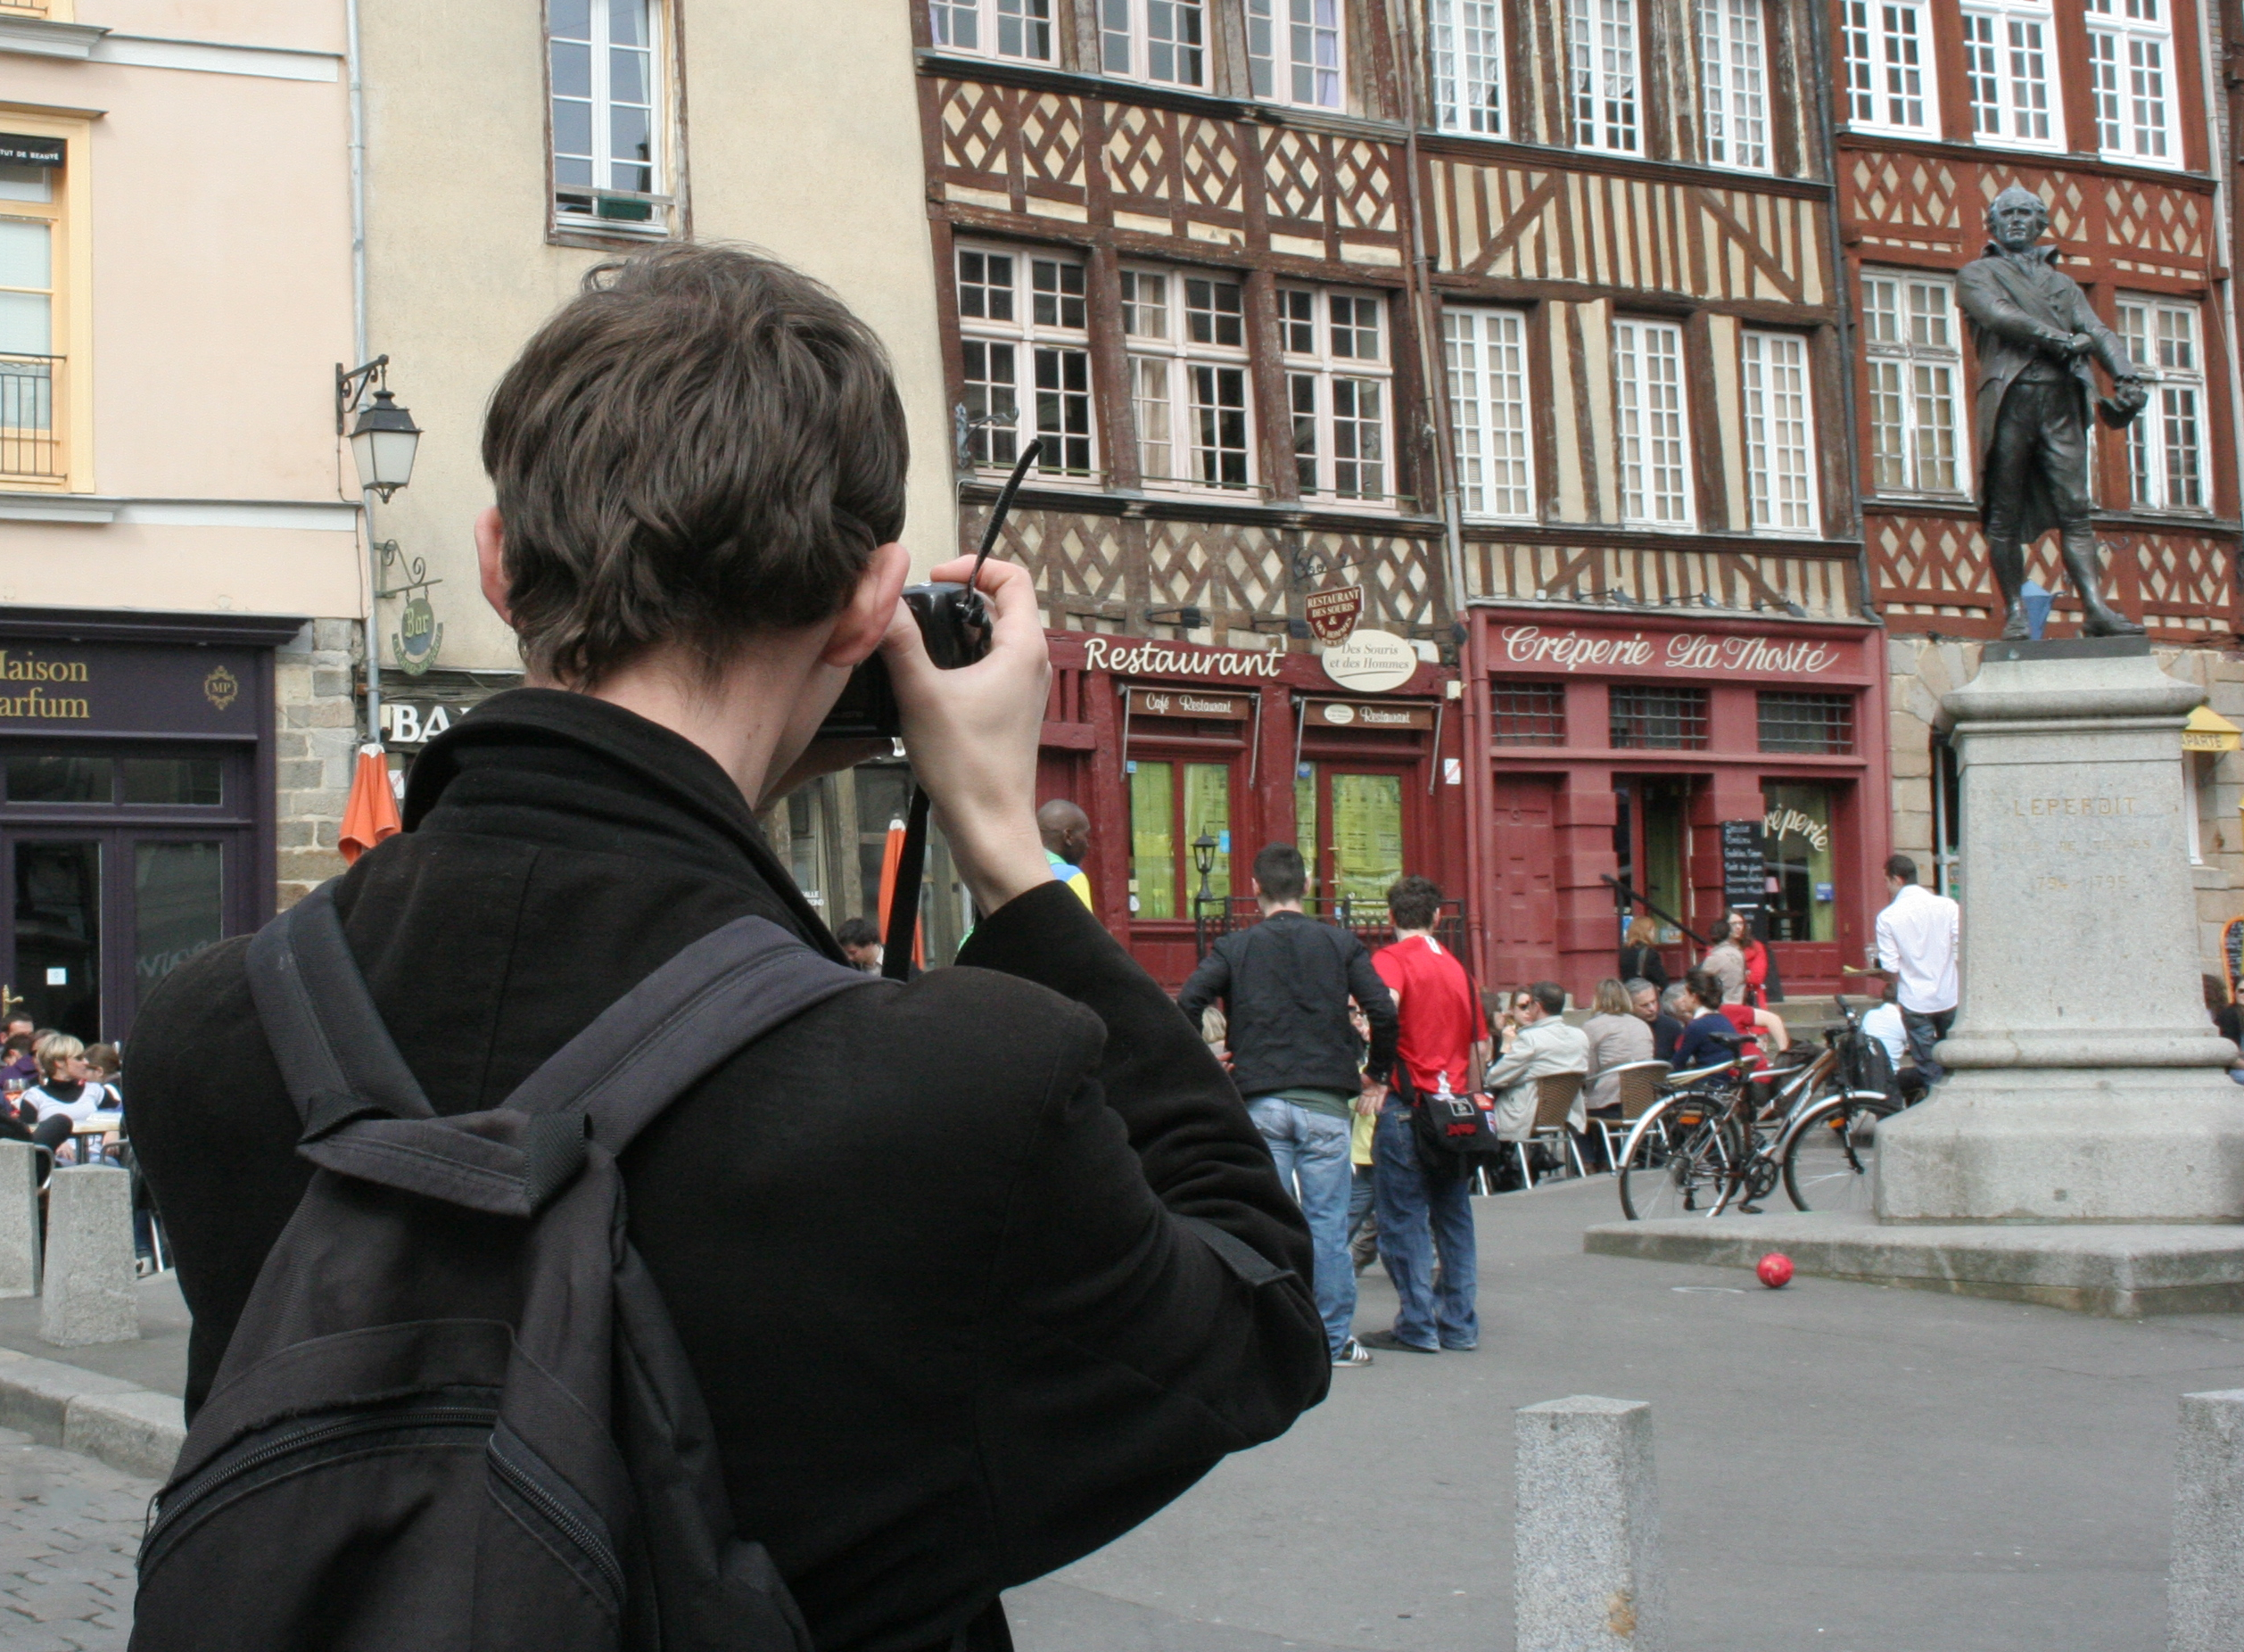 File:Wikilovesmonuments take a photographe 03 - zoomed.JPG ...